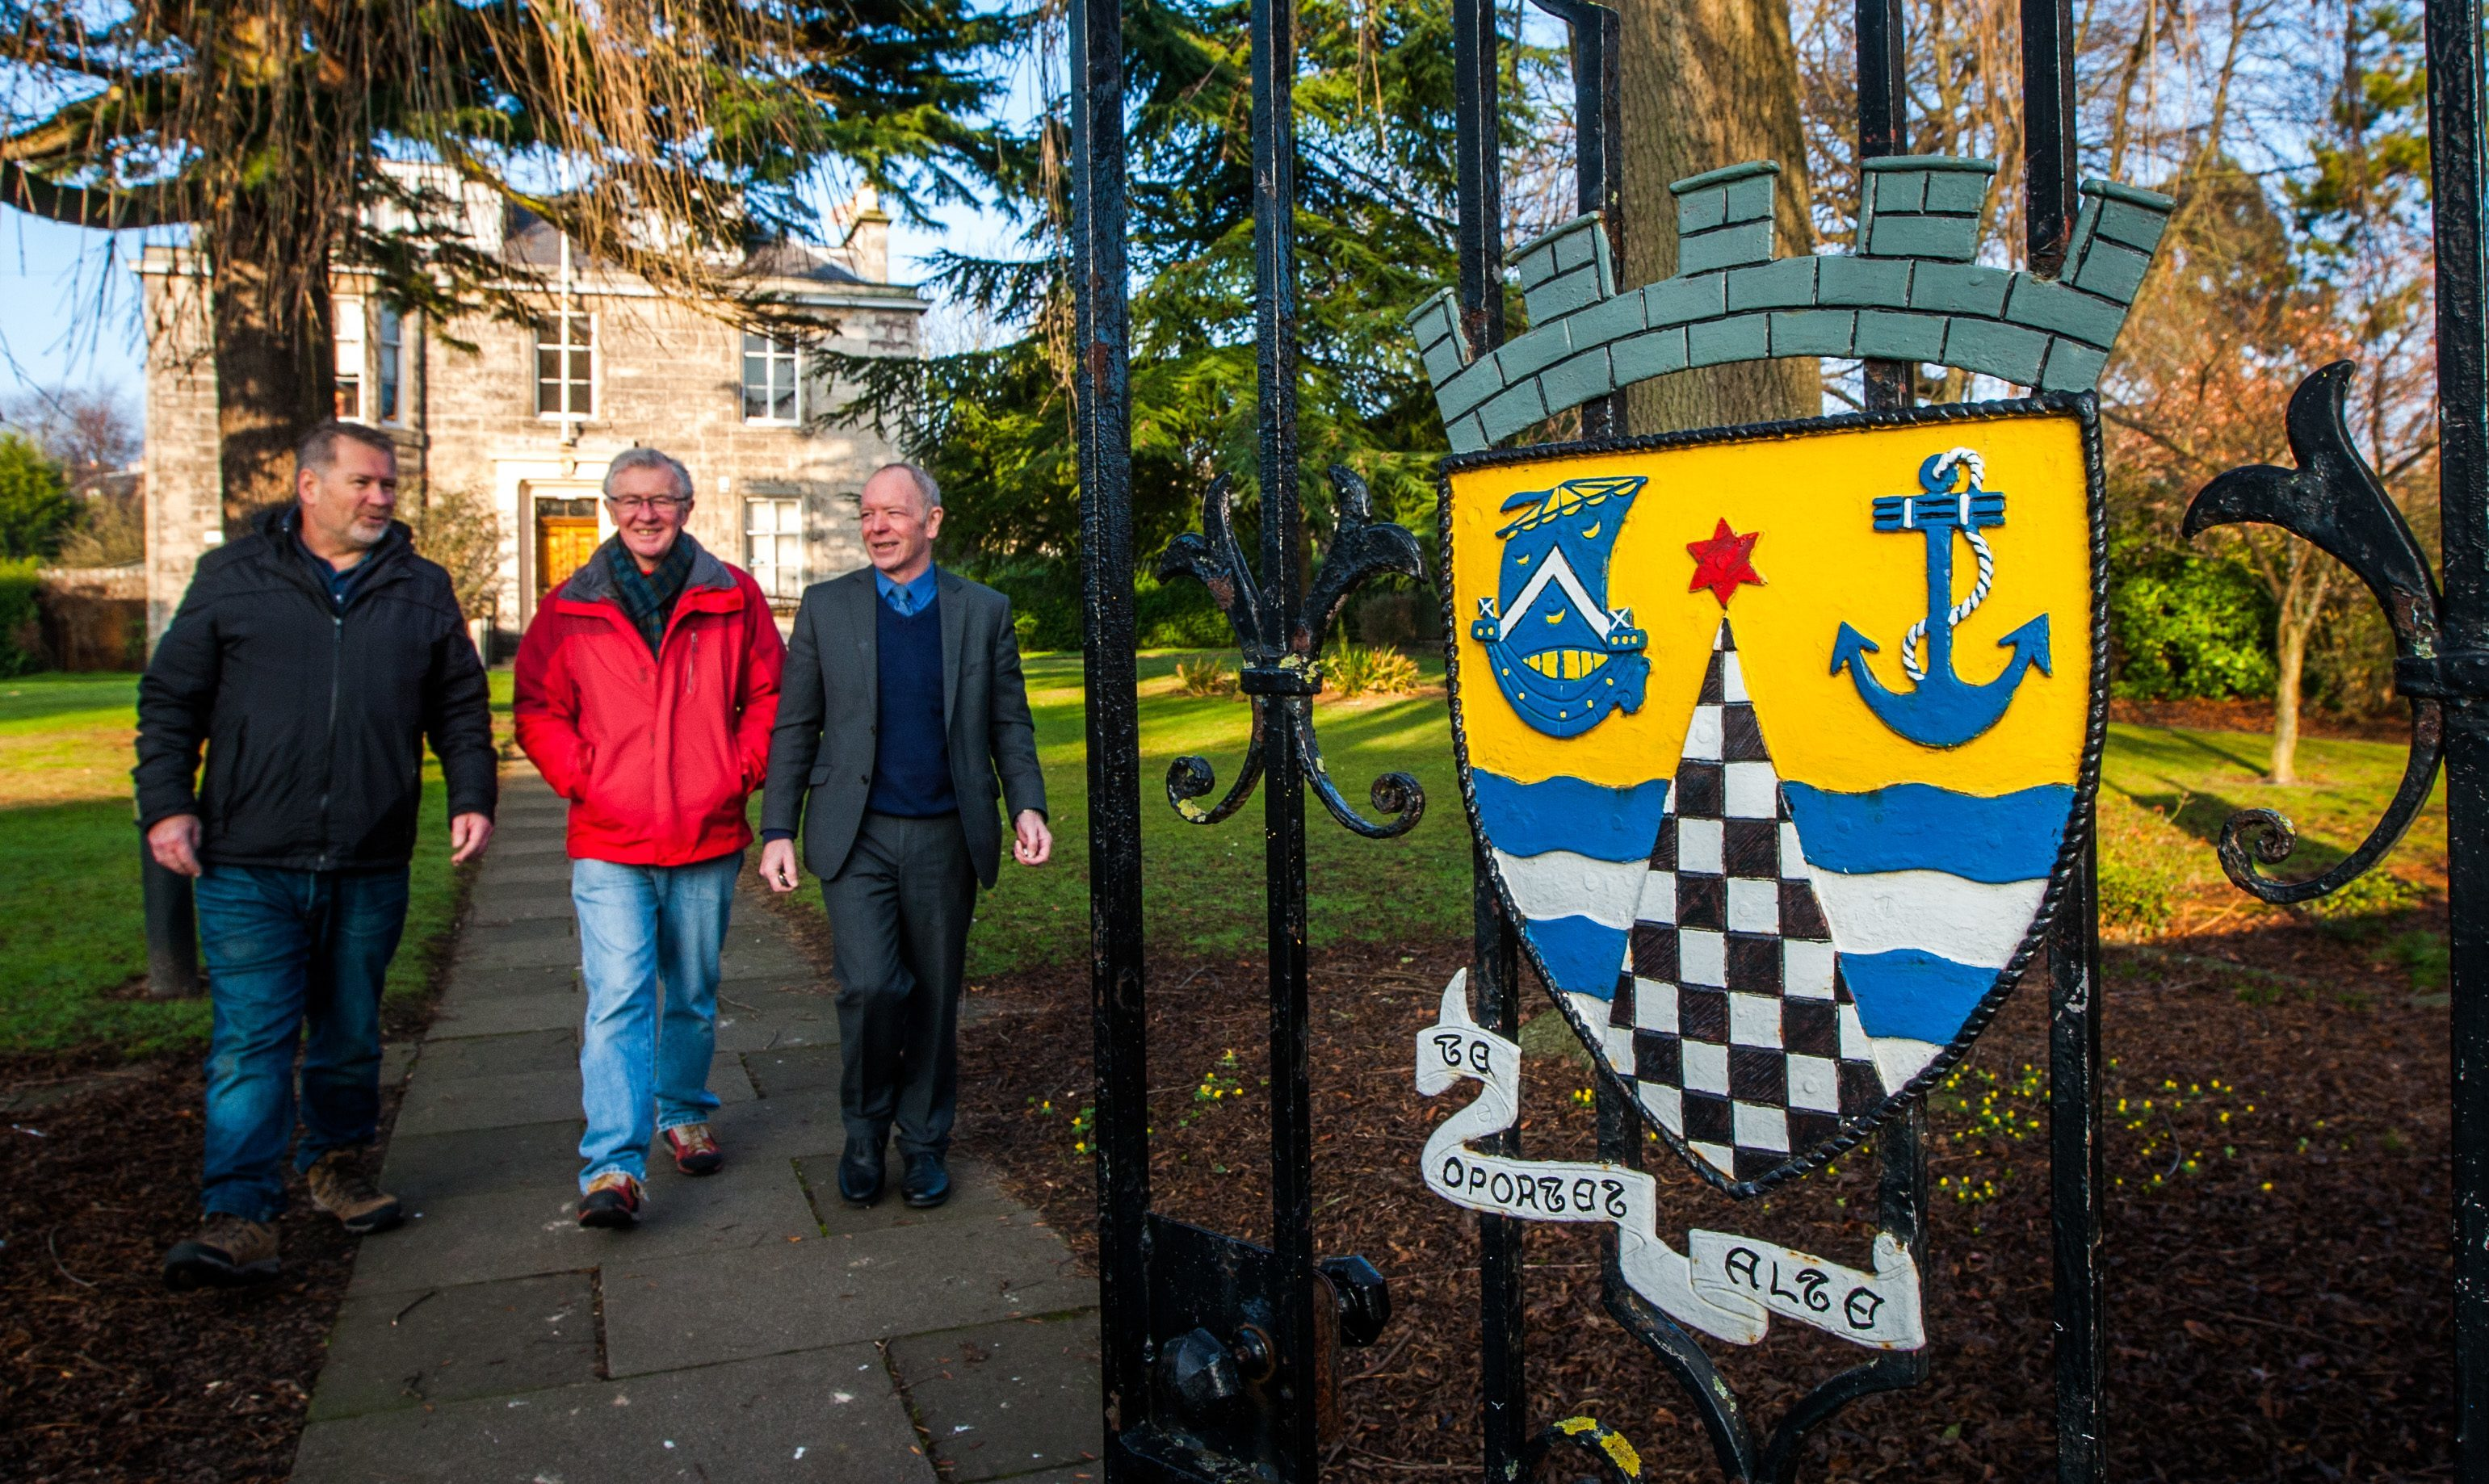 Derek Gray, Tony Gowland and Councillor Bill Connor, in the grounds of Burgh Chambers, alongside the crest of Tayport.